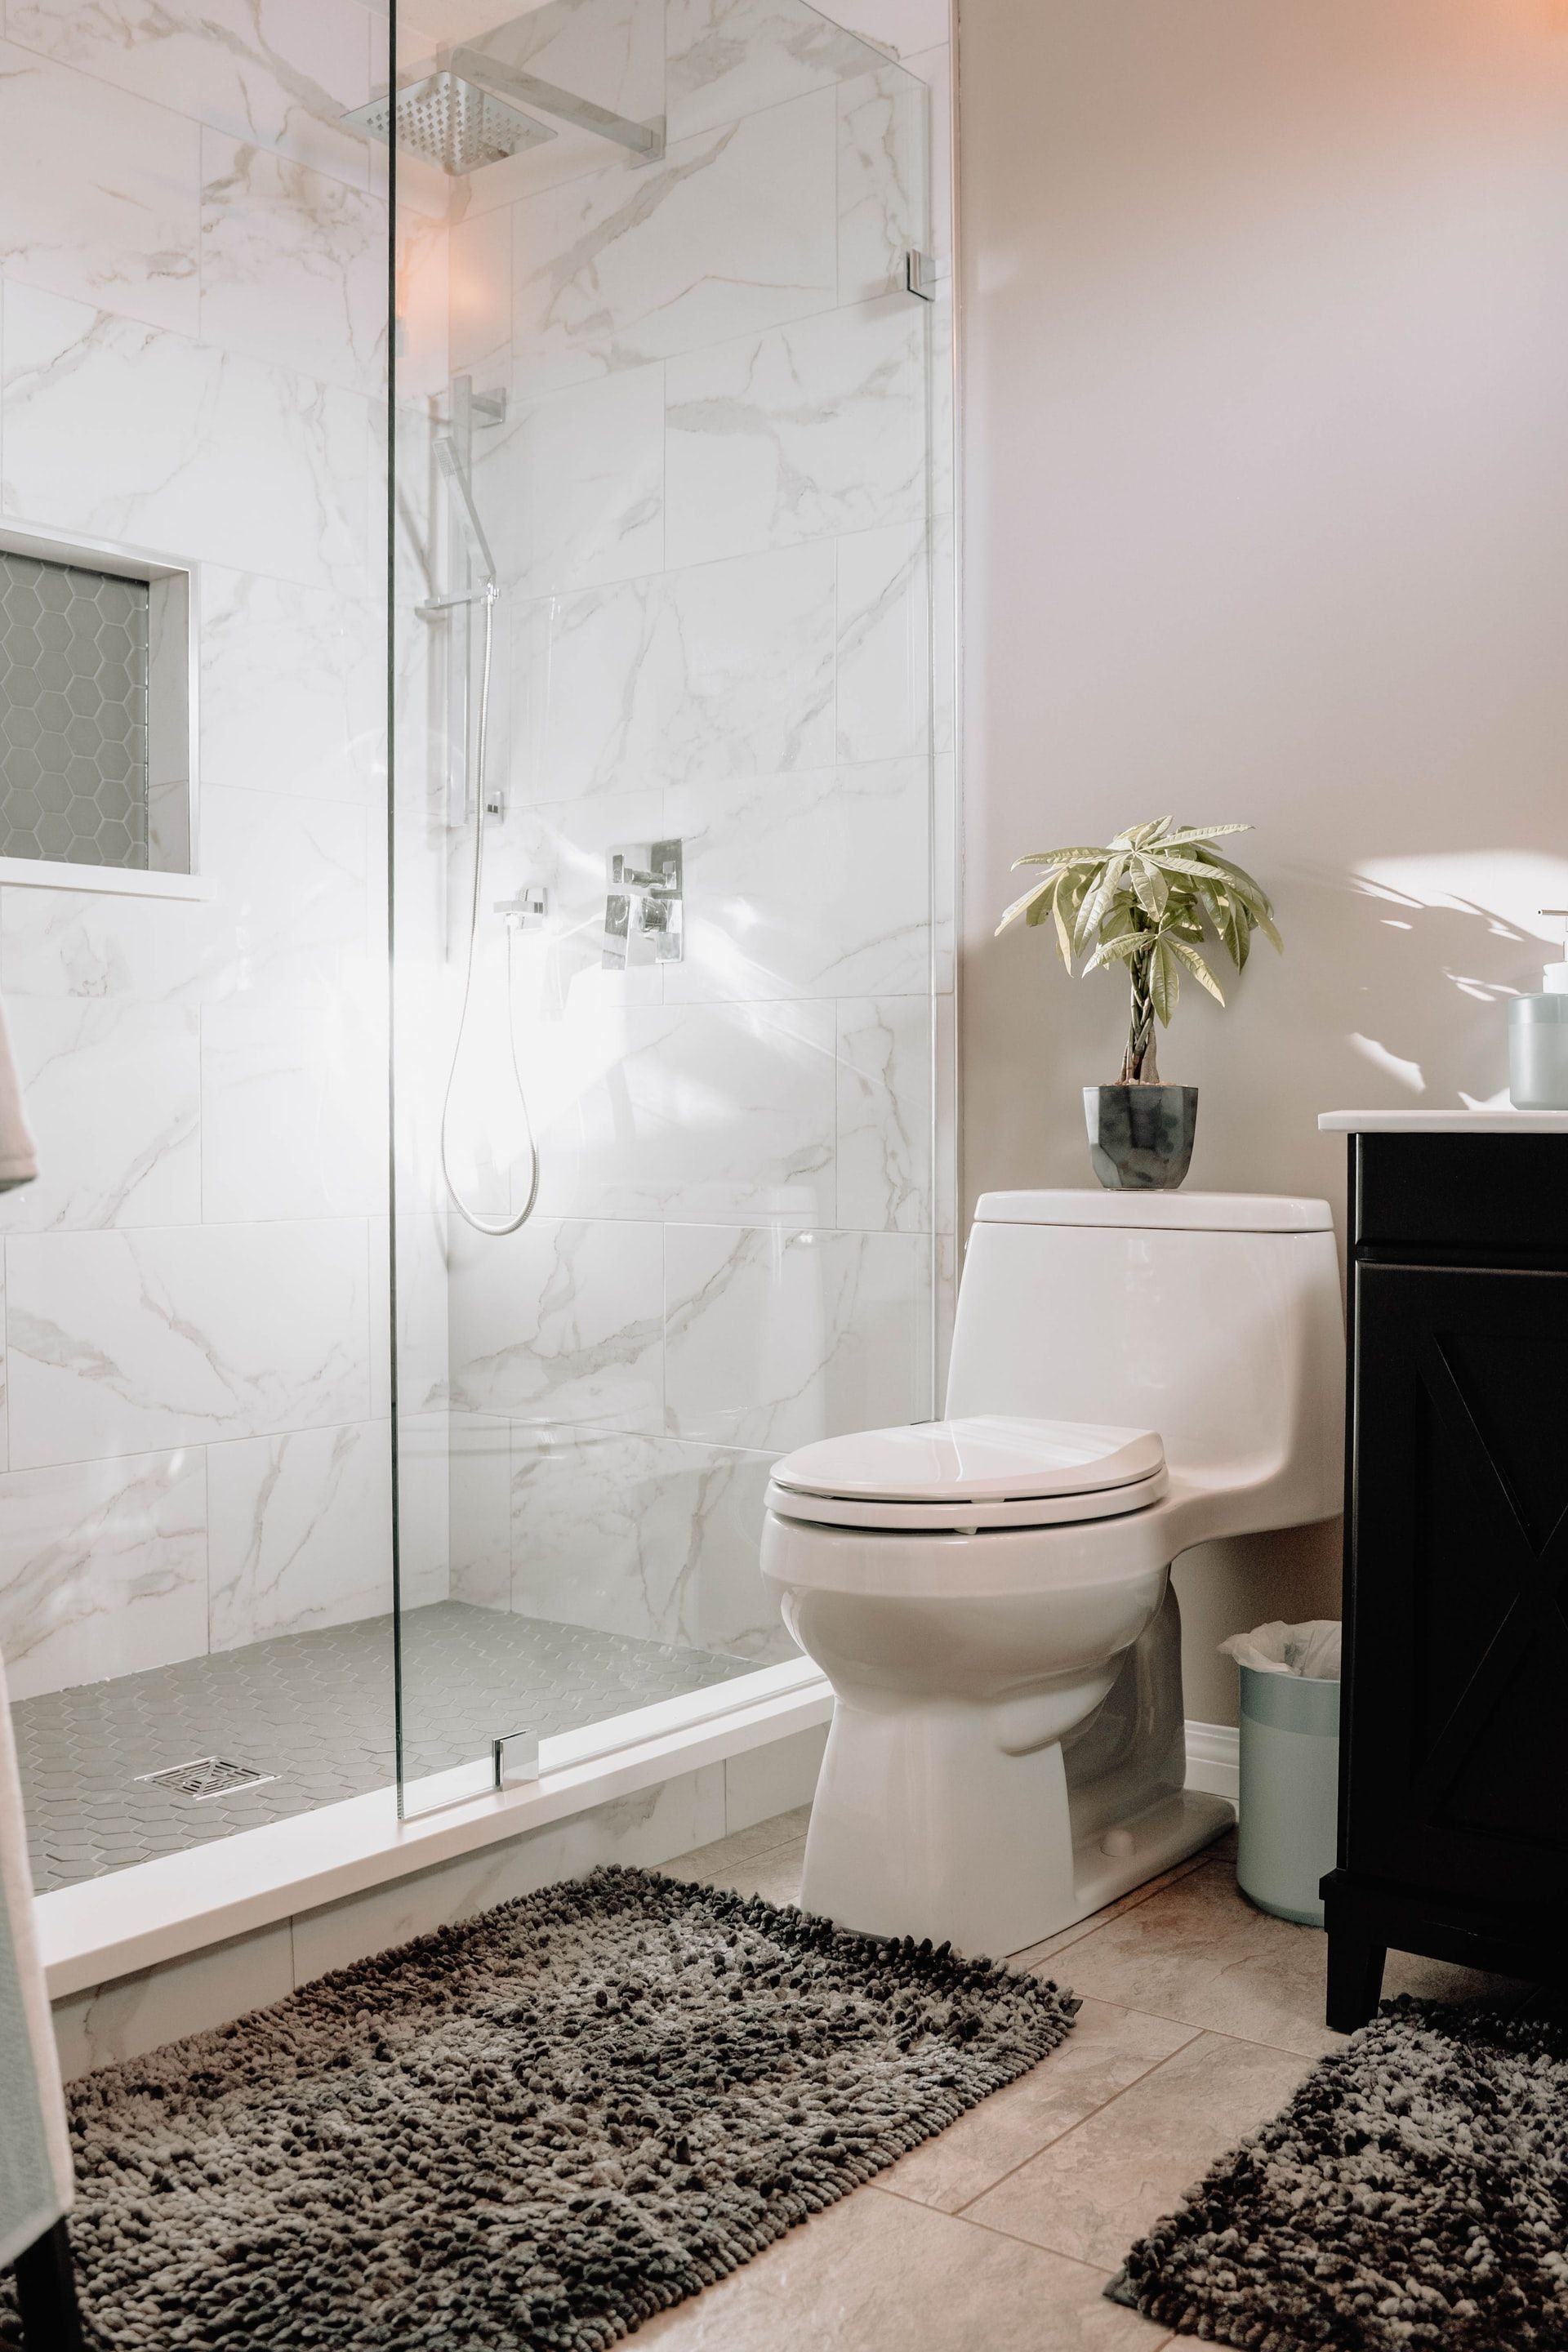 Small Bathroom Layout Ideas From An Architect For Maximum Space Use Small Bathroom Layout Bathroom Layout Bathroom Design